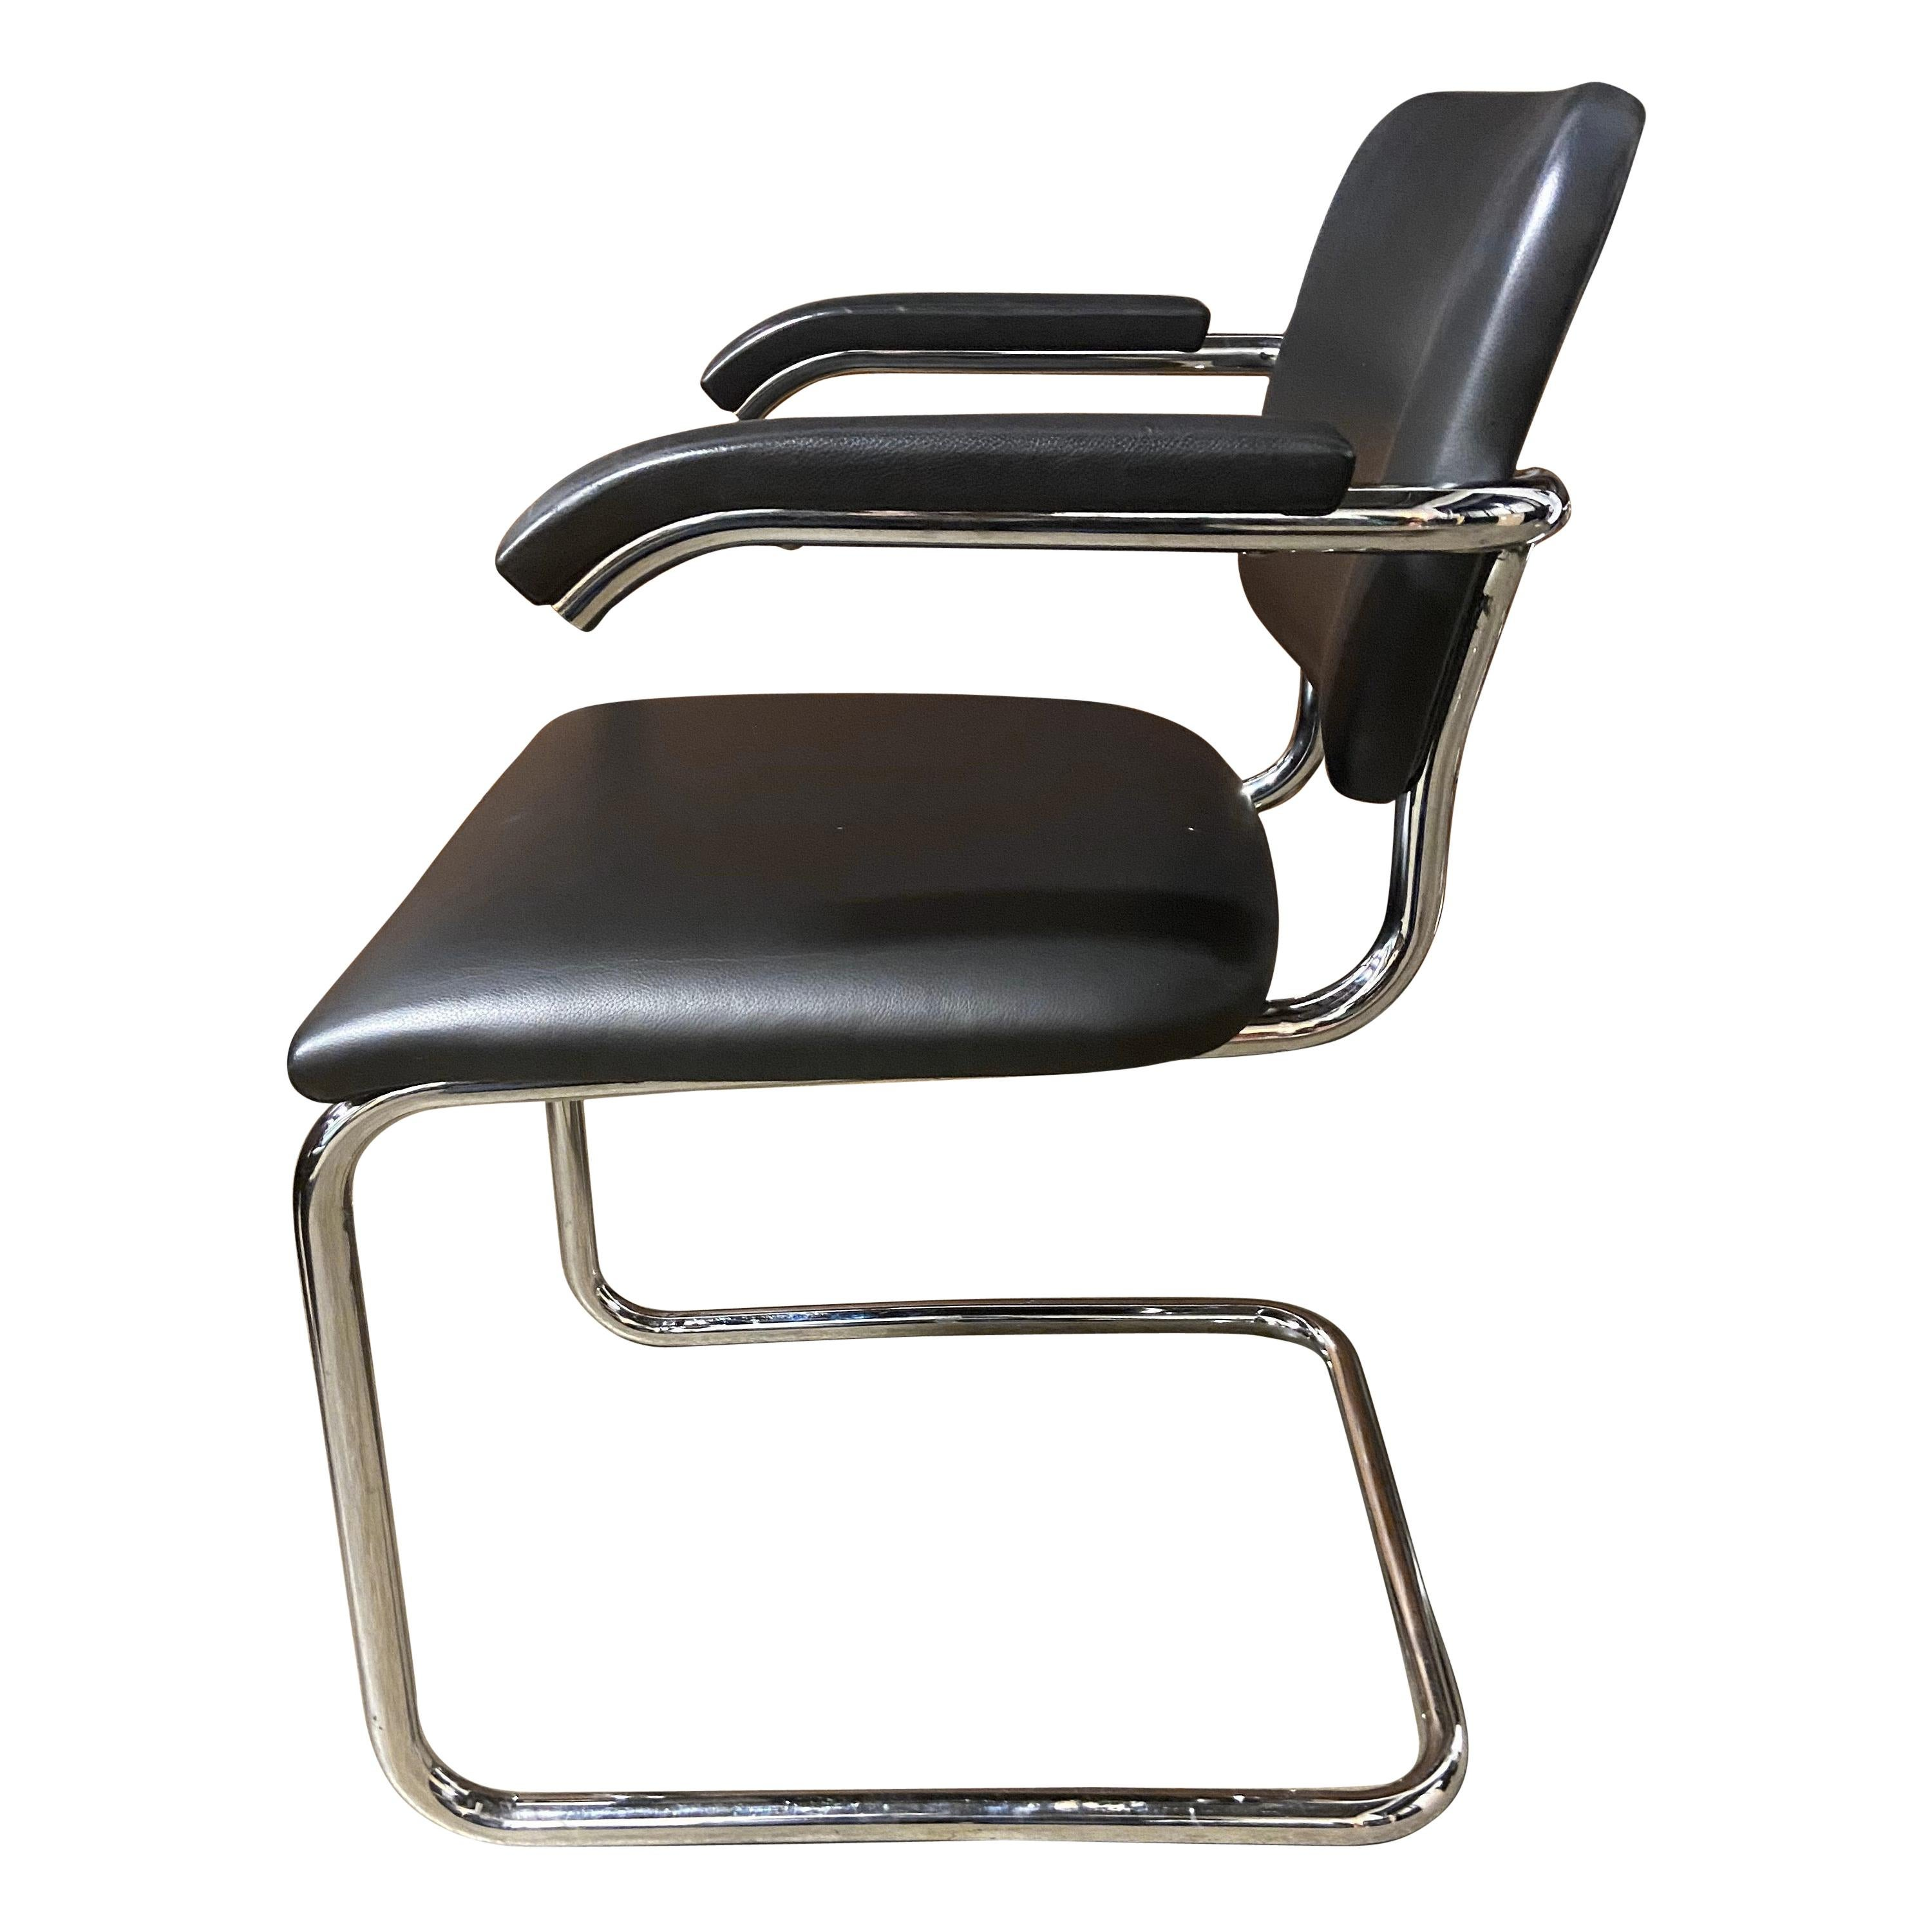 Authentic Midcentury Cesca Chairs by Marcel Breuer for Knoll